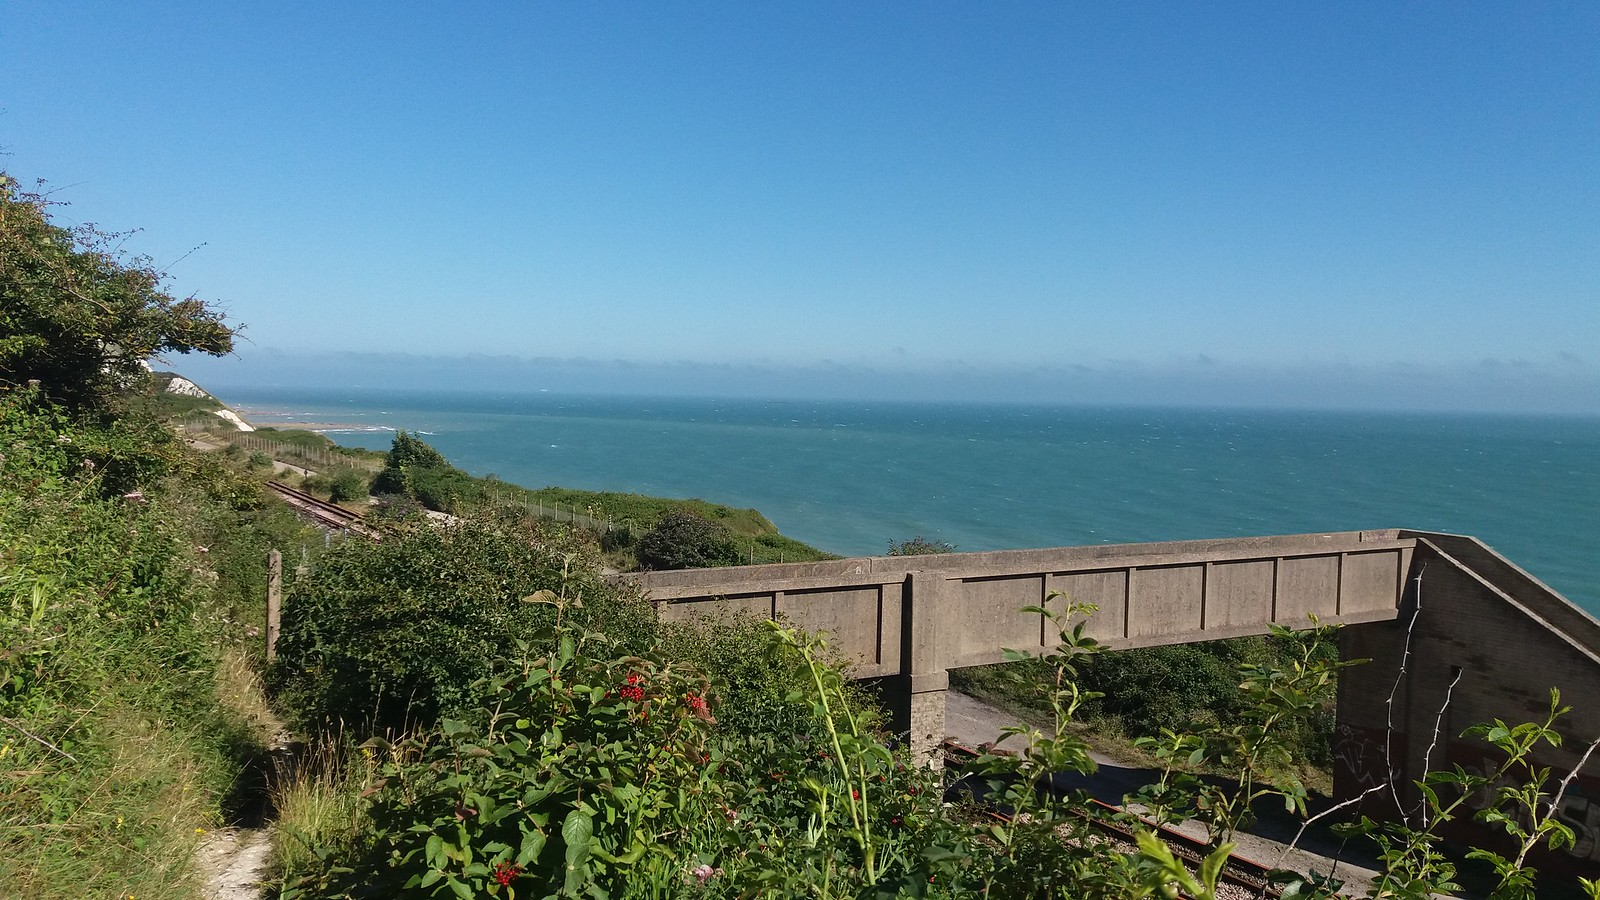 20160812_153313 Folkestone Warren - footpath bridge over the rail line